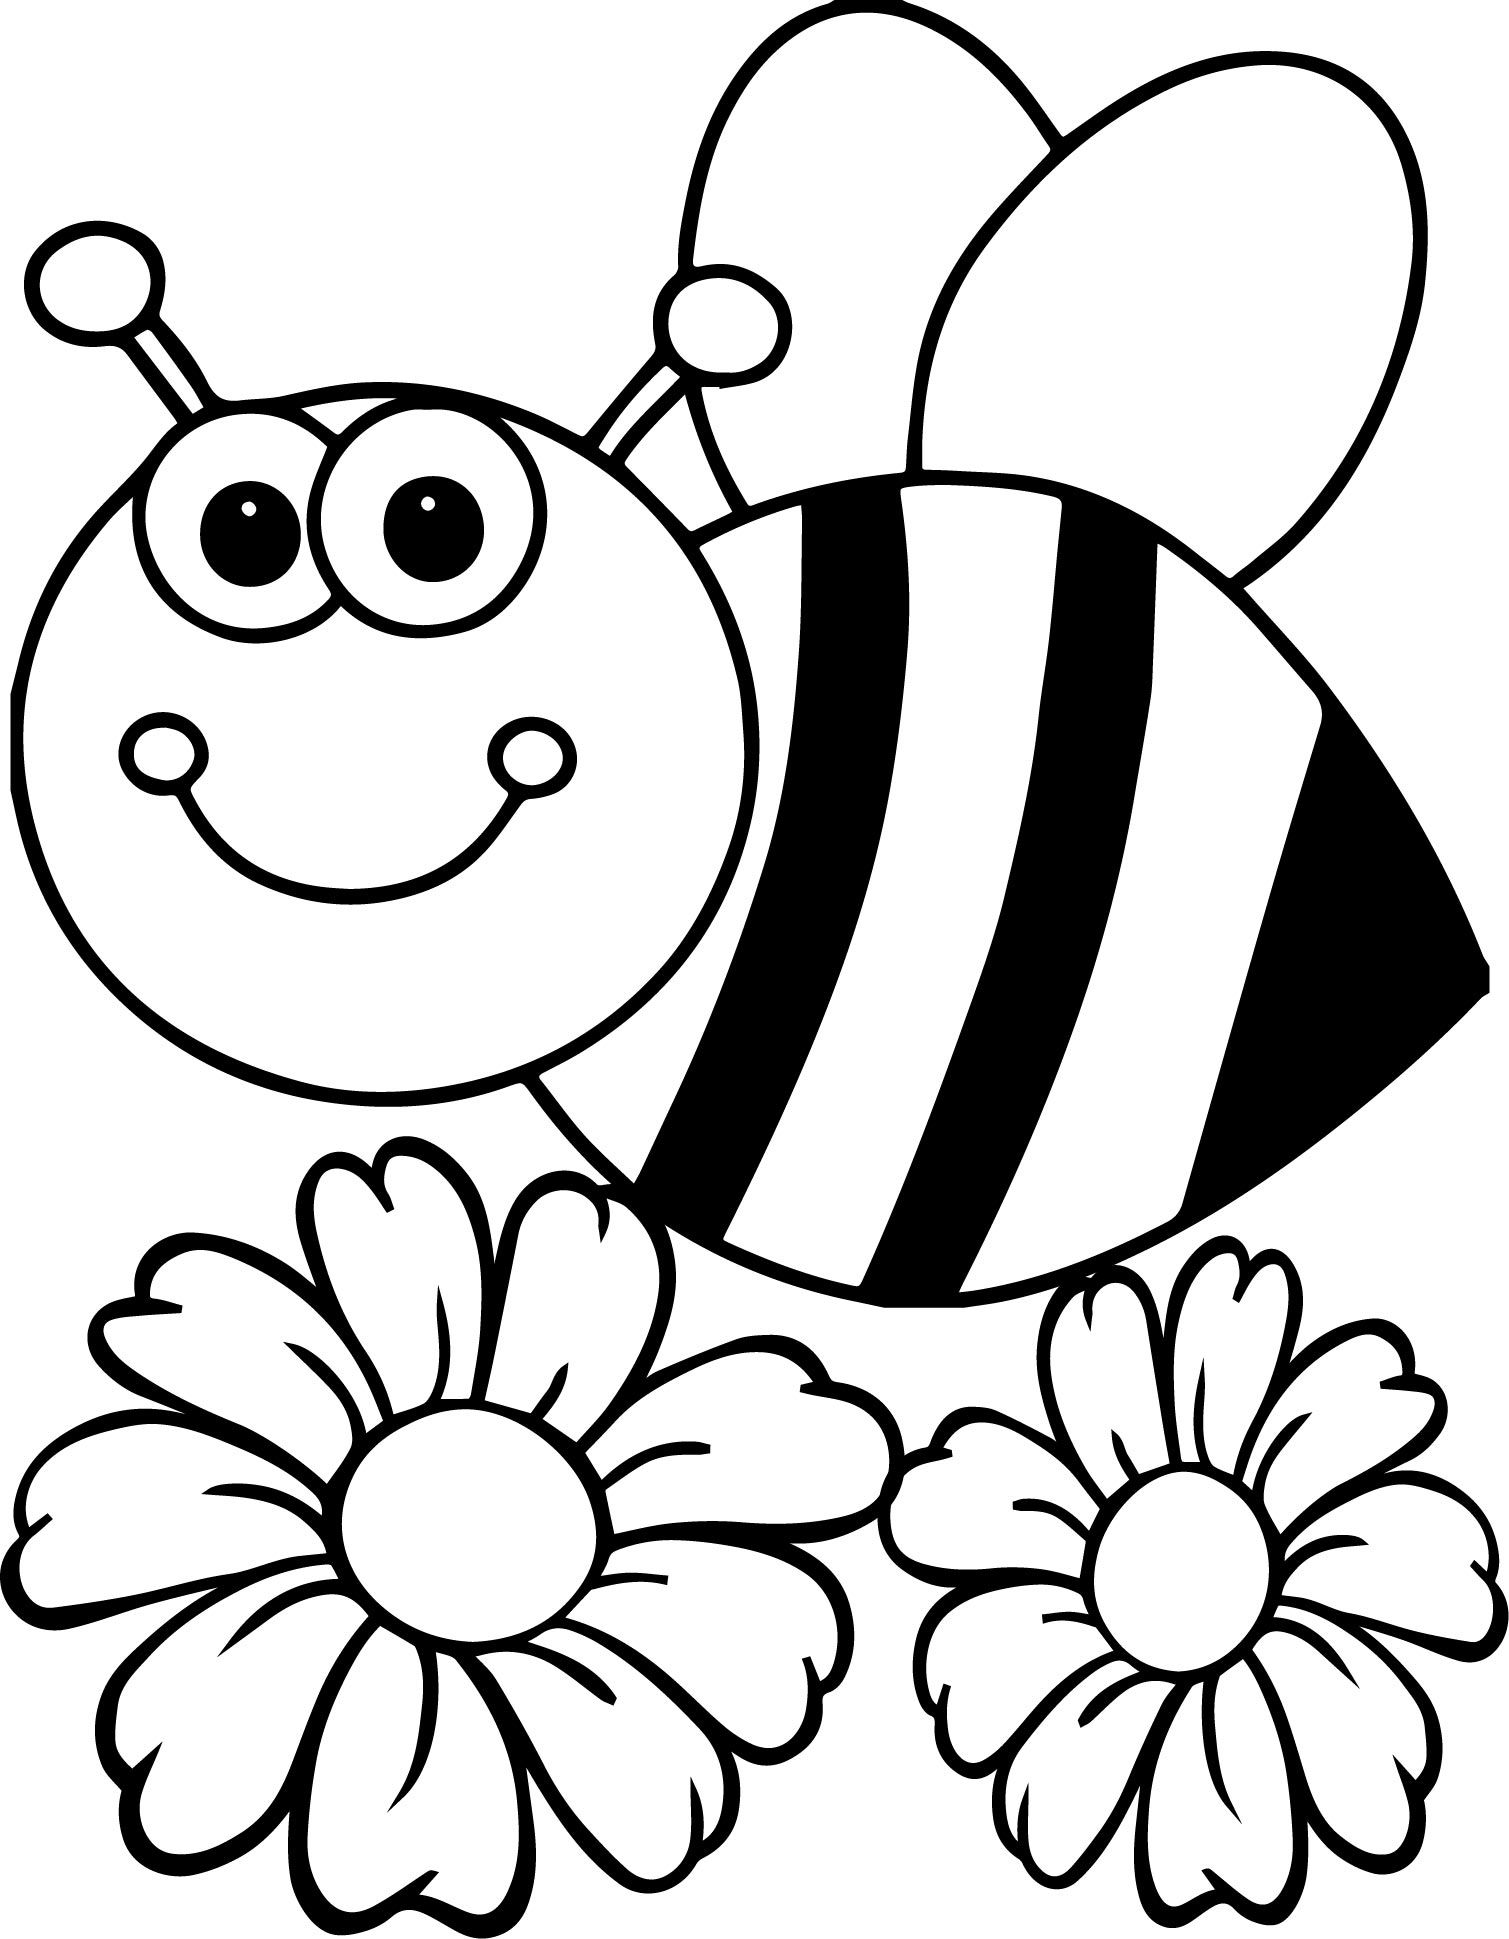 Cool Bee Flower Coloring Page Bee Coloring Pages Flower Coloring Pages Printable Flower Coloring Pages